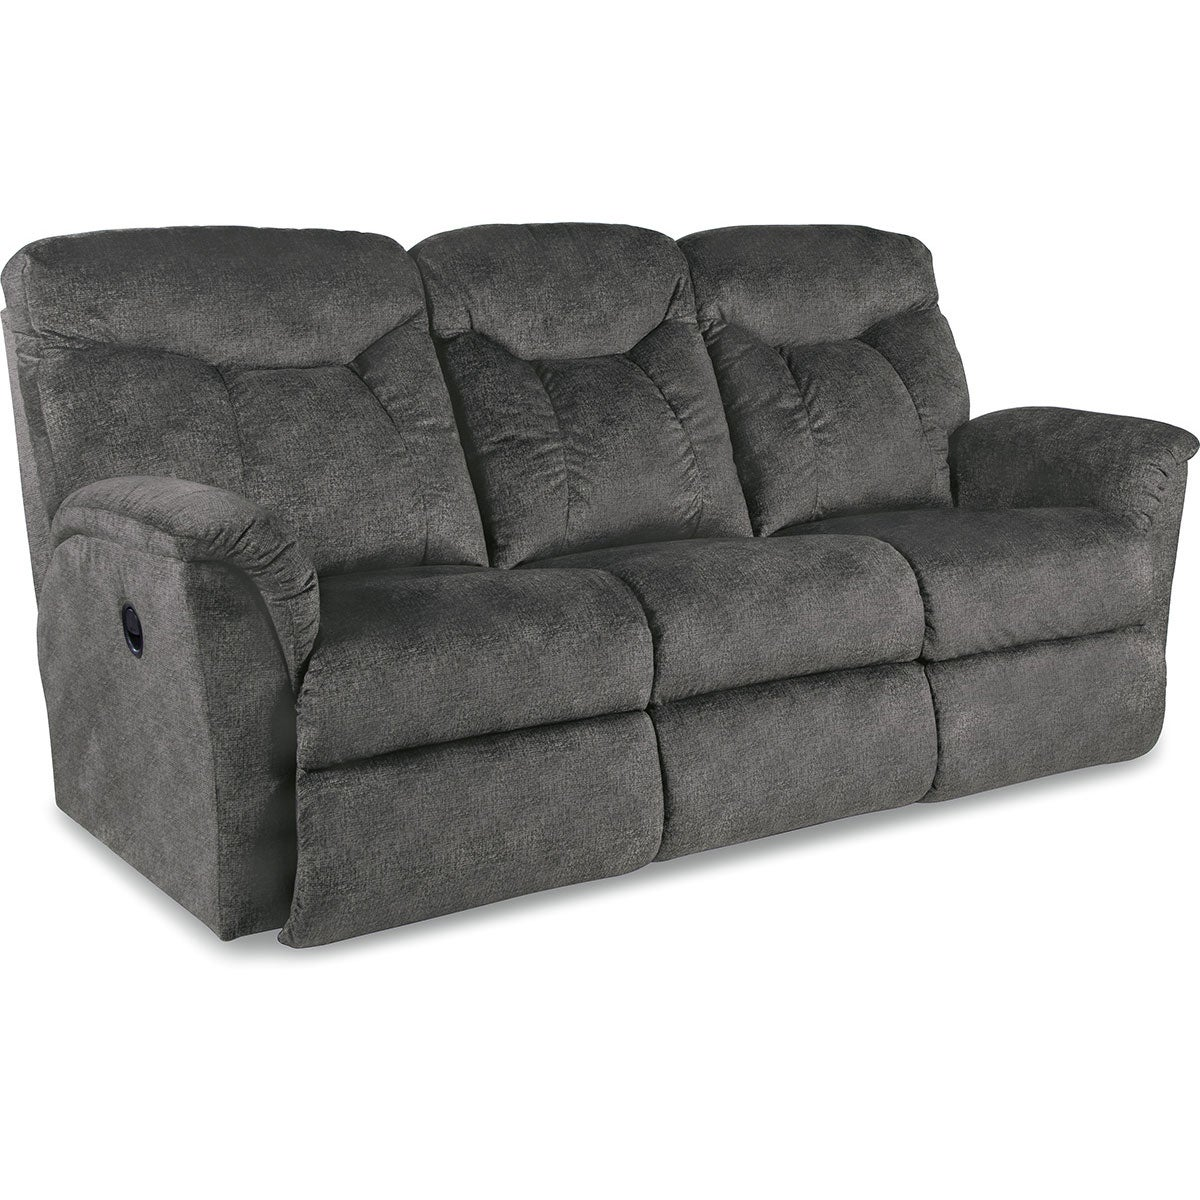 sc 1 st  La-Z-Boy & Fortune La-Z-Time® Full Reclining Sofa islam-shia.org